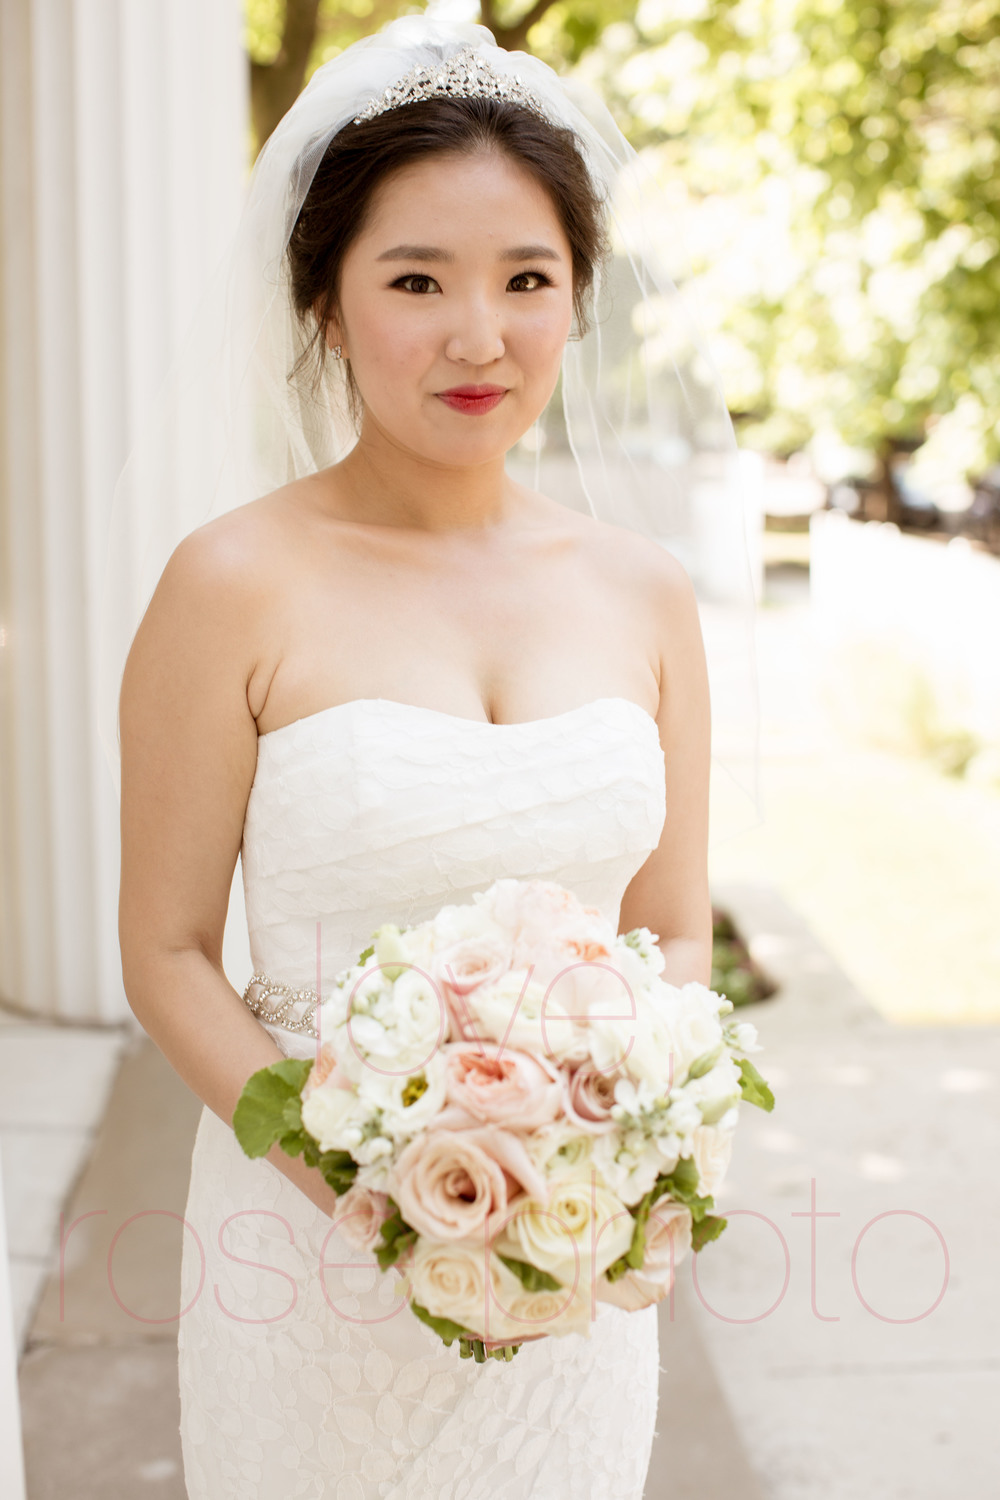 Hanvit + Lukus Lincoln Park Salvatore's Korean German Wedding portrait lifestyle photographer-003.jpg